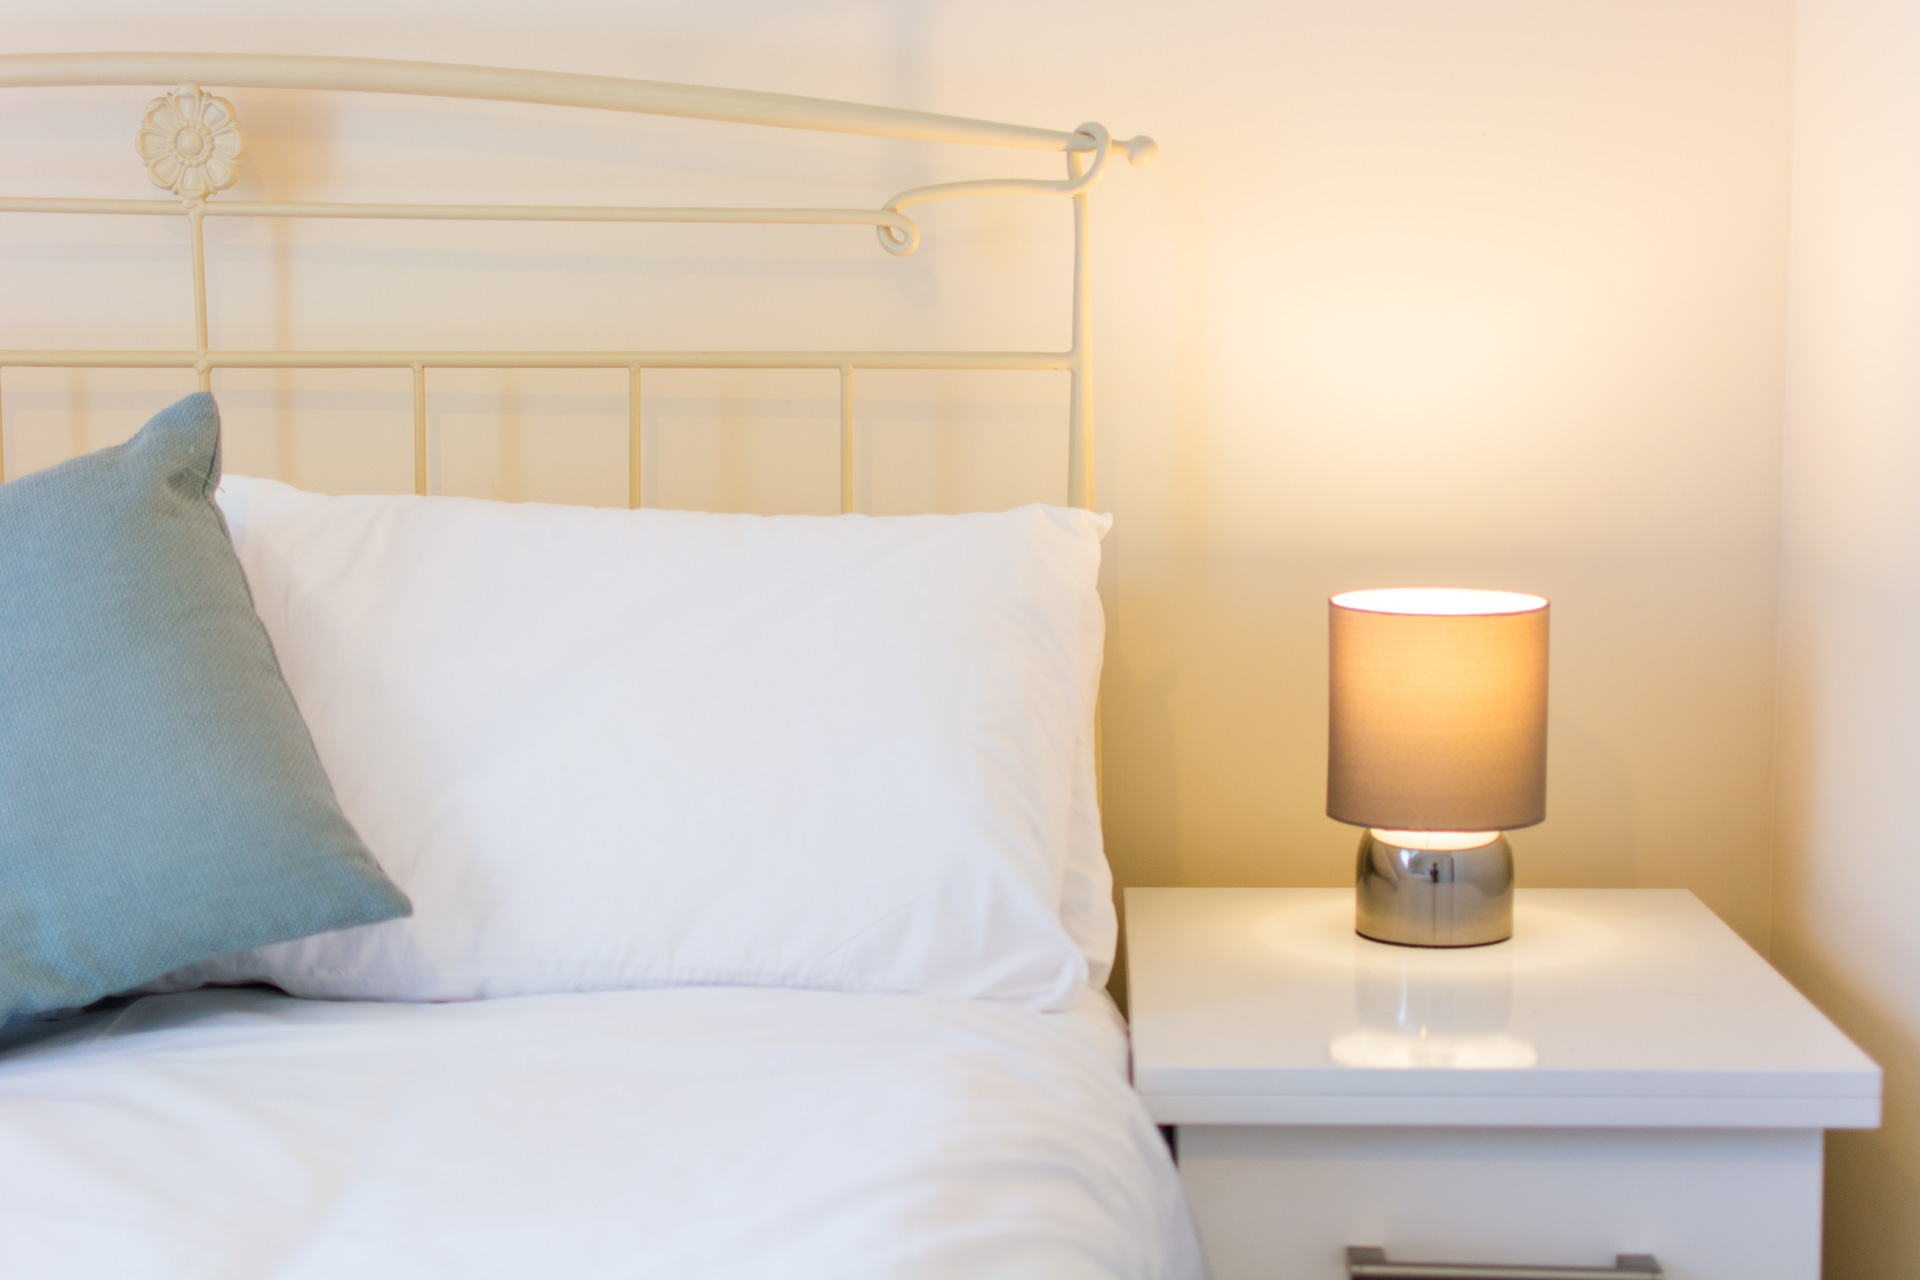 Bedside table with lamps.